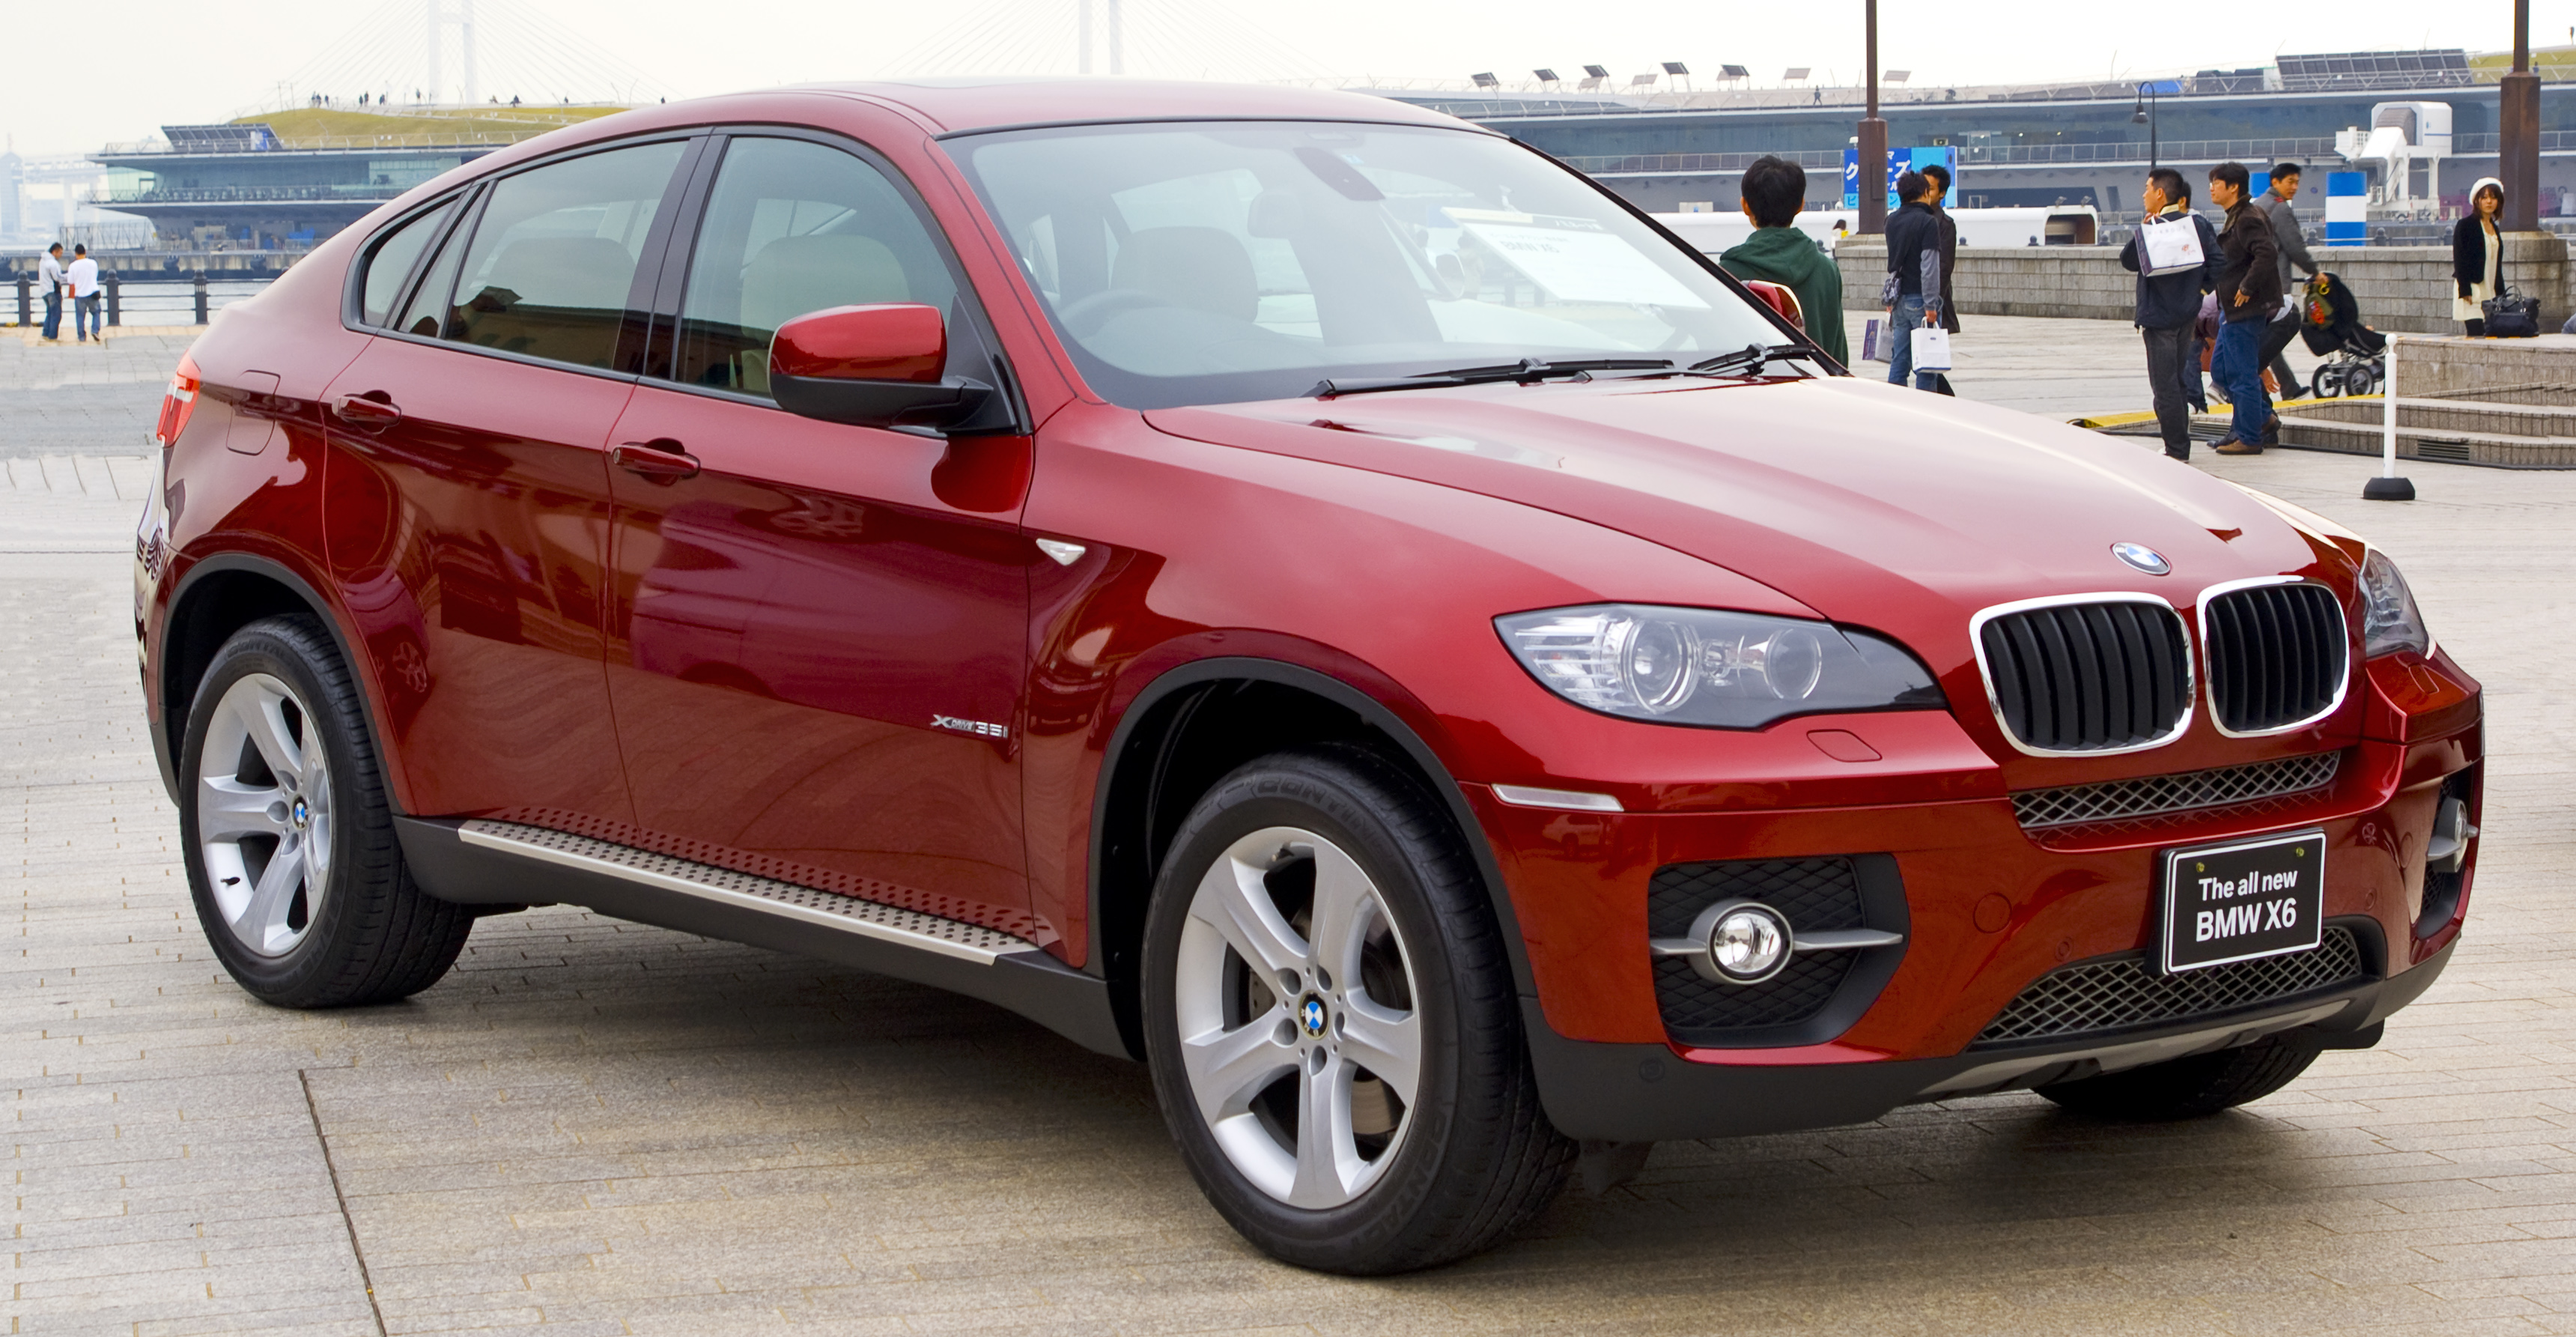 File Bmw E71 X6 Xdrive35i 01 Jpg Wikimedia Commons